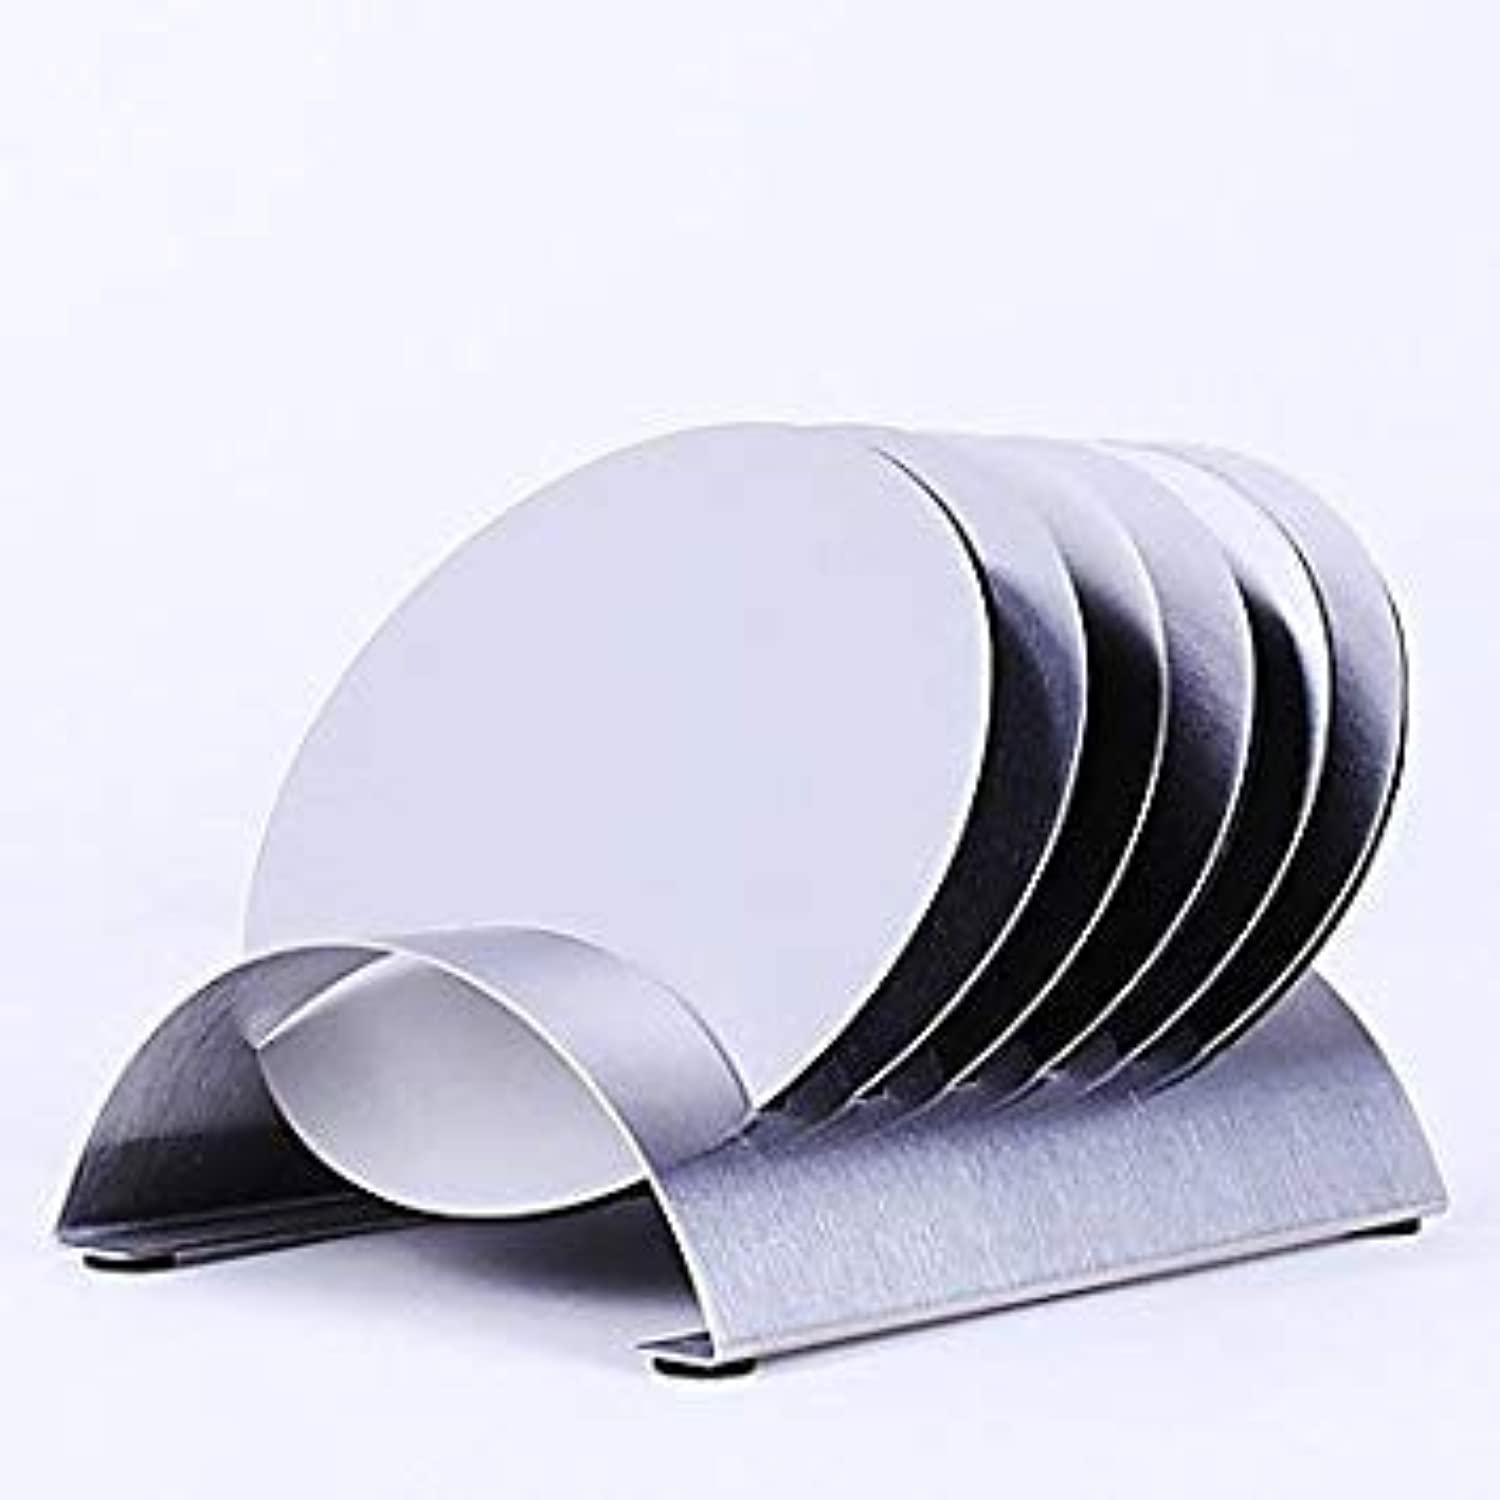 6Pcs lot Stainless Steel Coffee Cup Coasters Pad Holder Pot Bowls Round Insulated Heat Mat